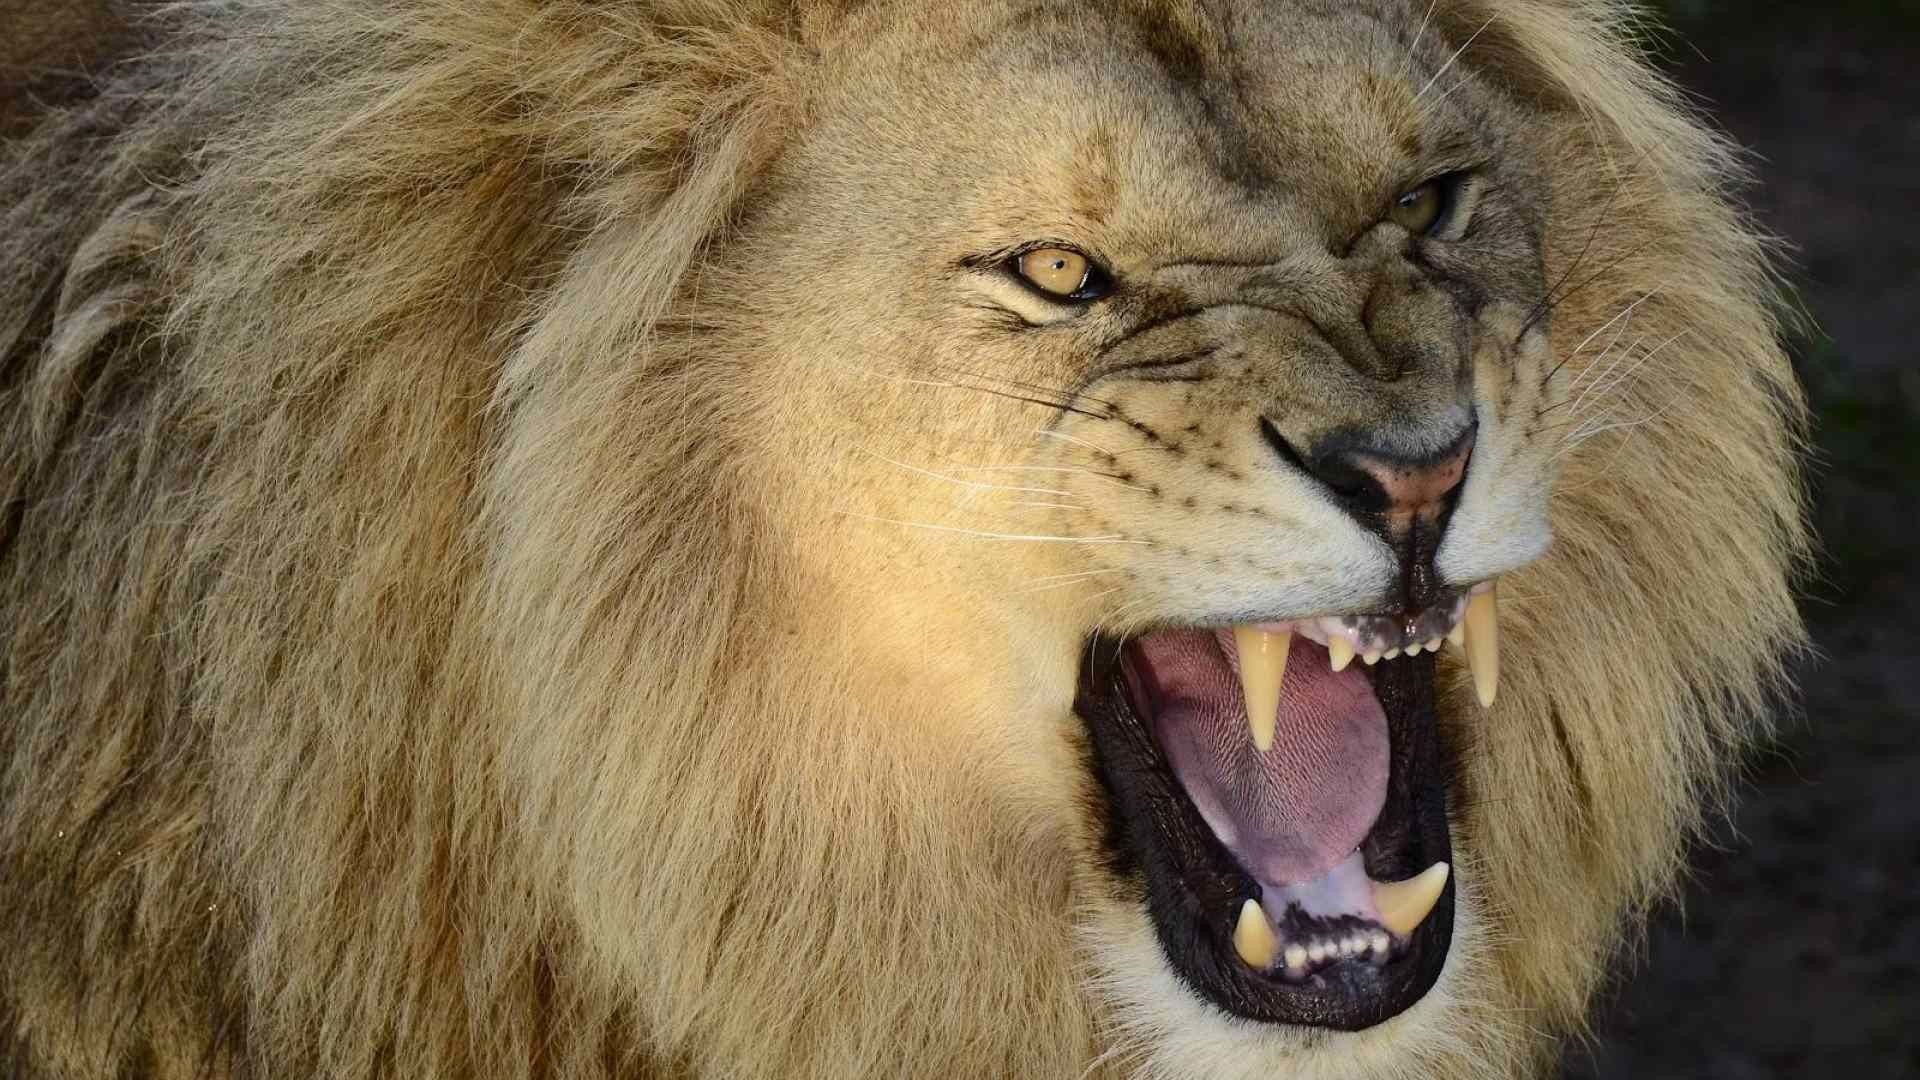 pictures of a roaring lion wallpaper